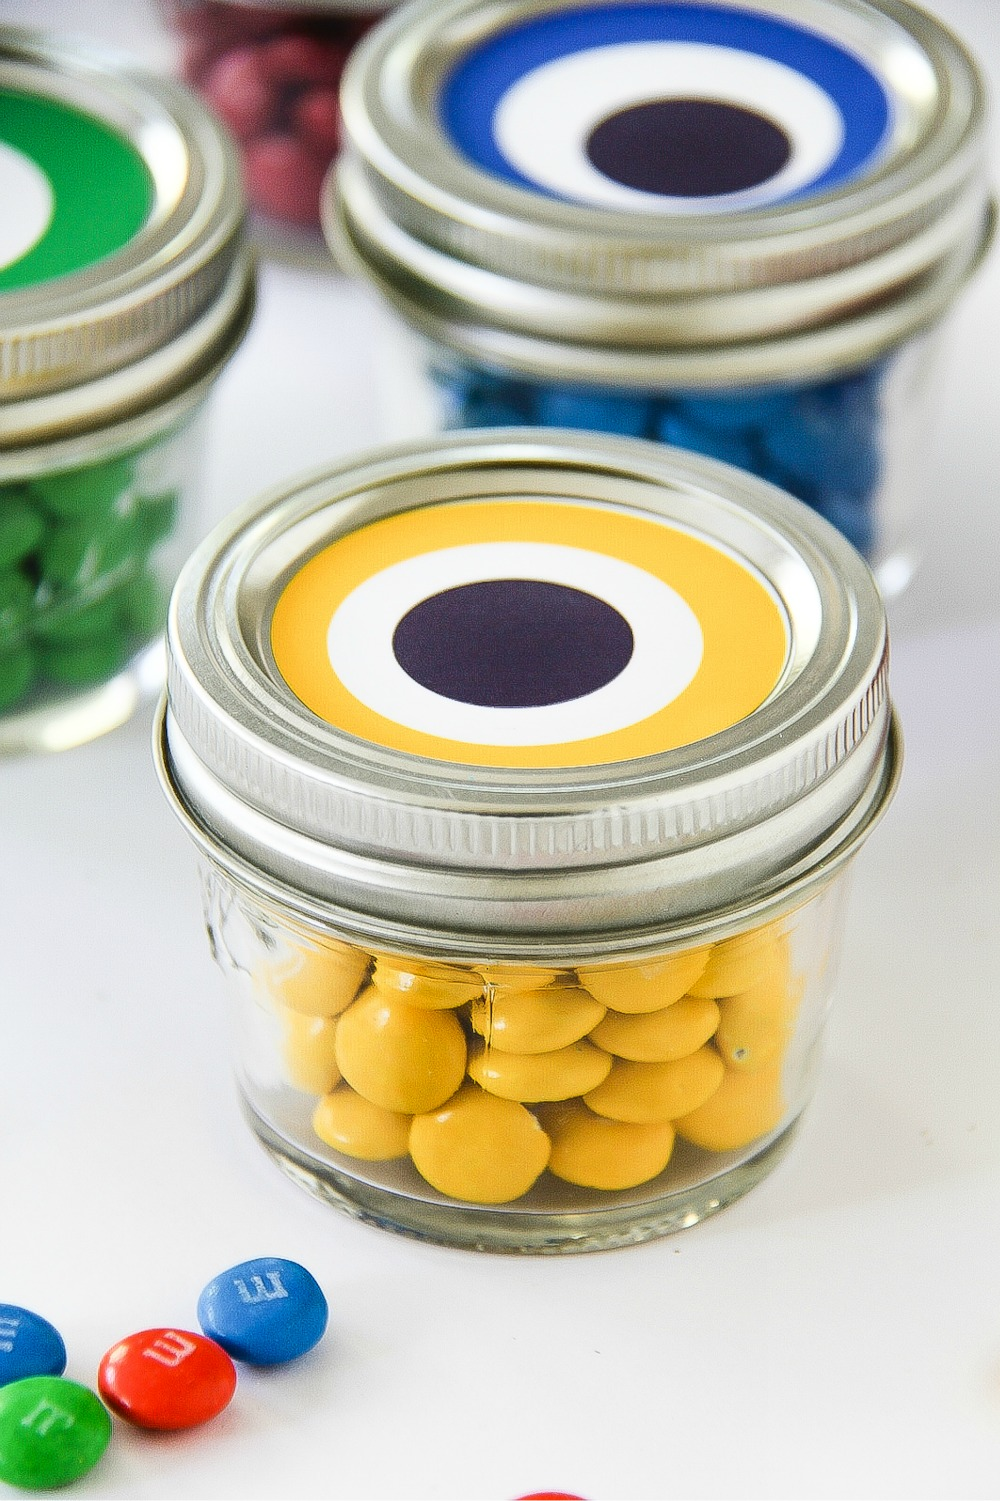 small canning jars with colorful candy and eyeballs on top to look like monsters